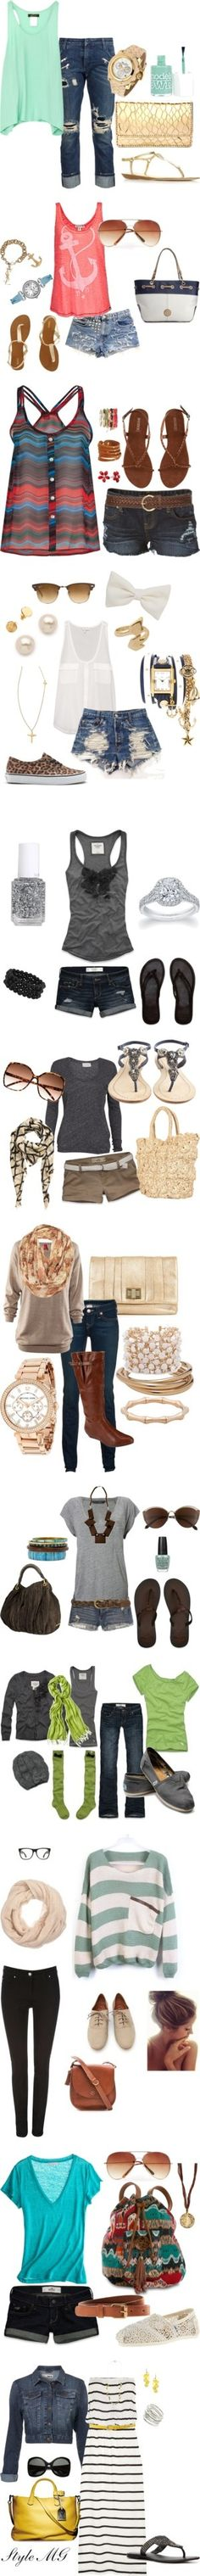 #   New Fashion  #2dayslook  #fashion #new #nice   www.2dayslook.com